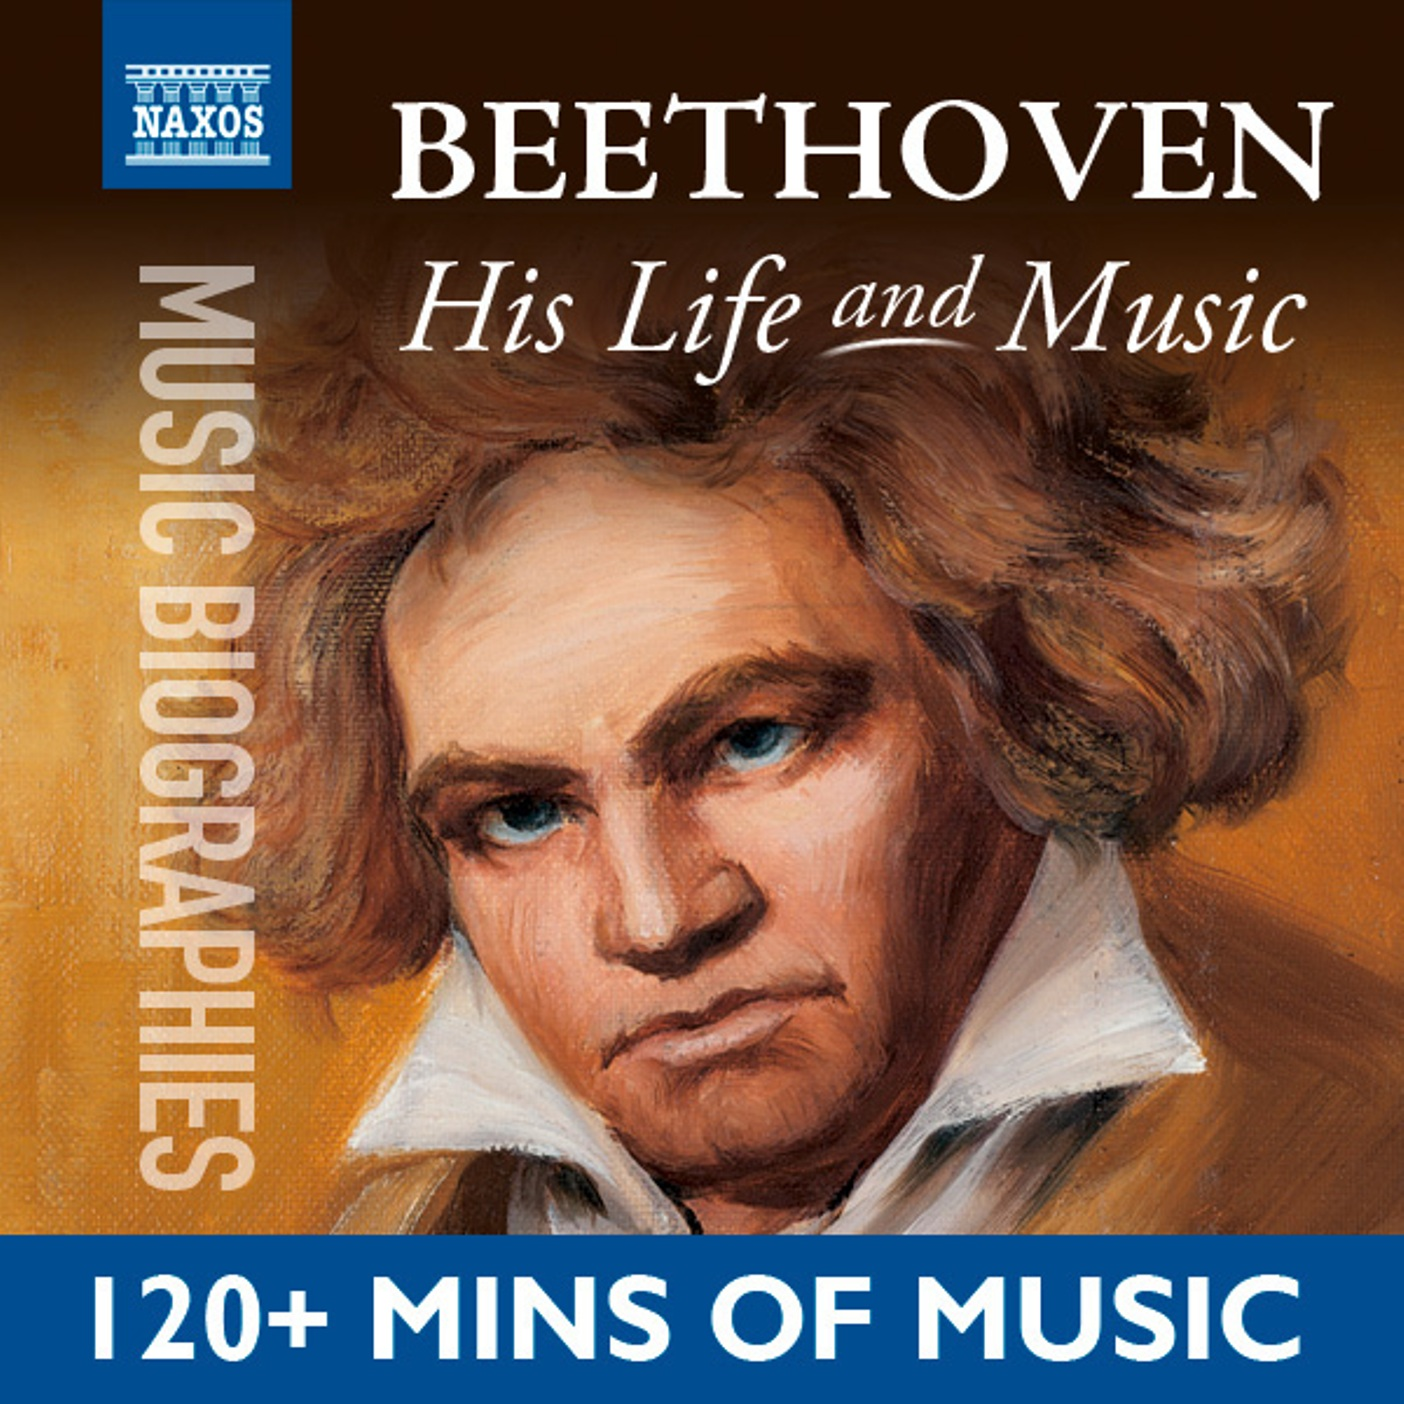 The life and music of ludwig van beethoven